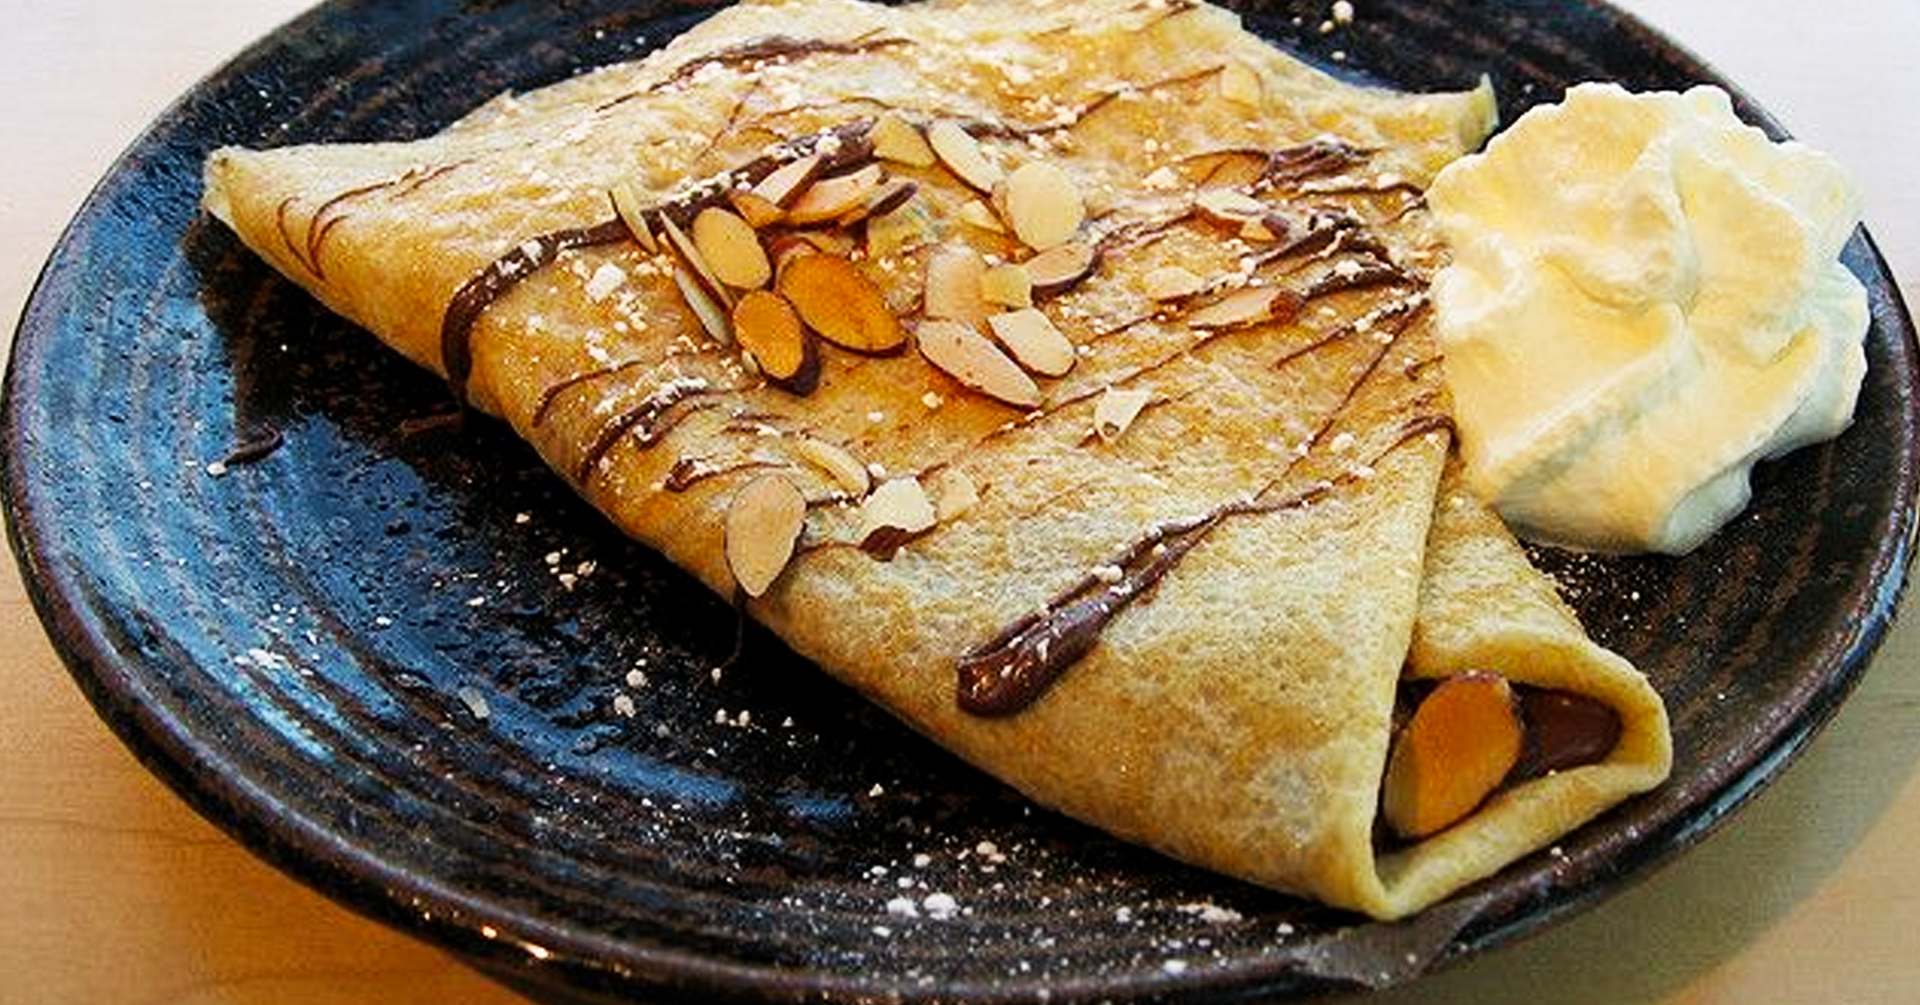 Nutella Crepes For World Nutella Day The Fat Kid Inside